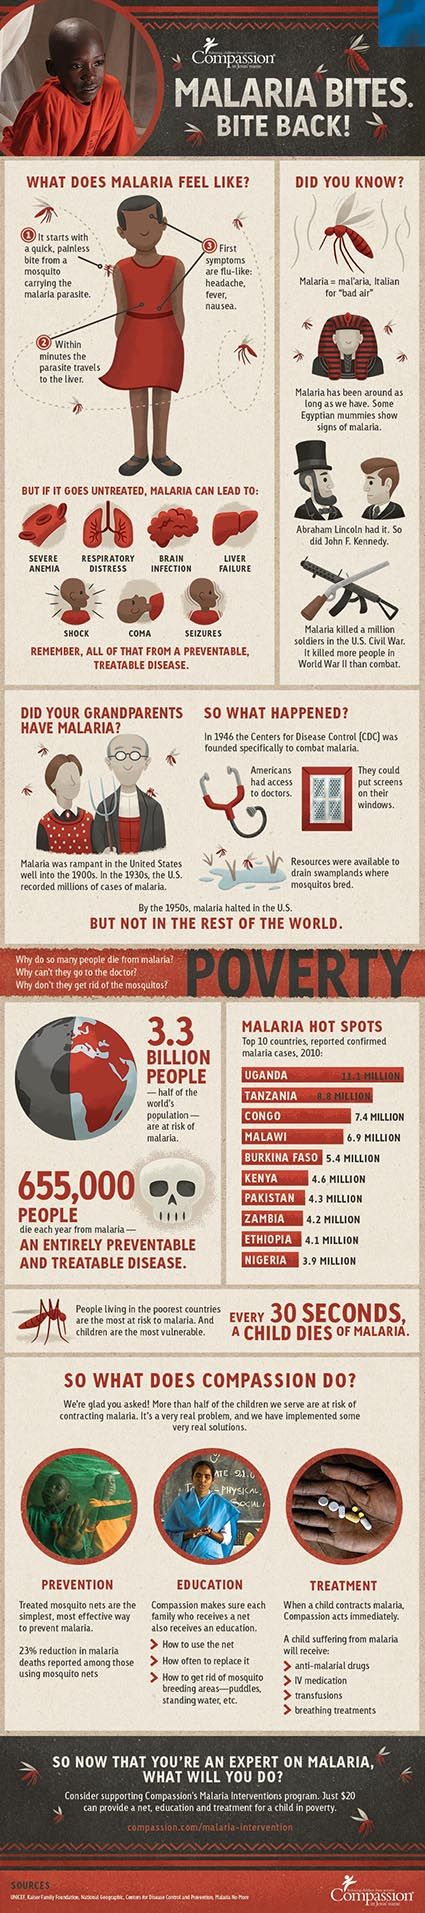 best images about malaria advocacy resources infographic malaria bites bite back